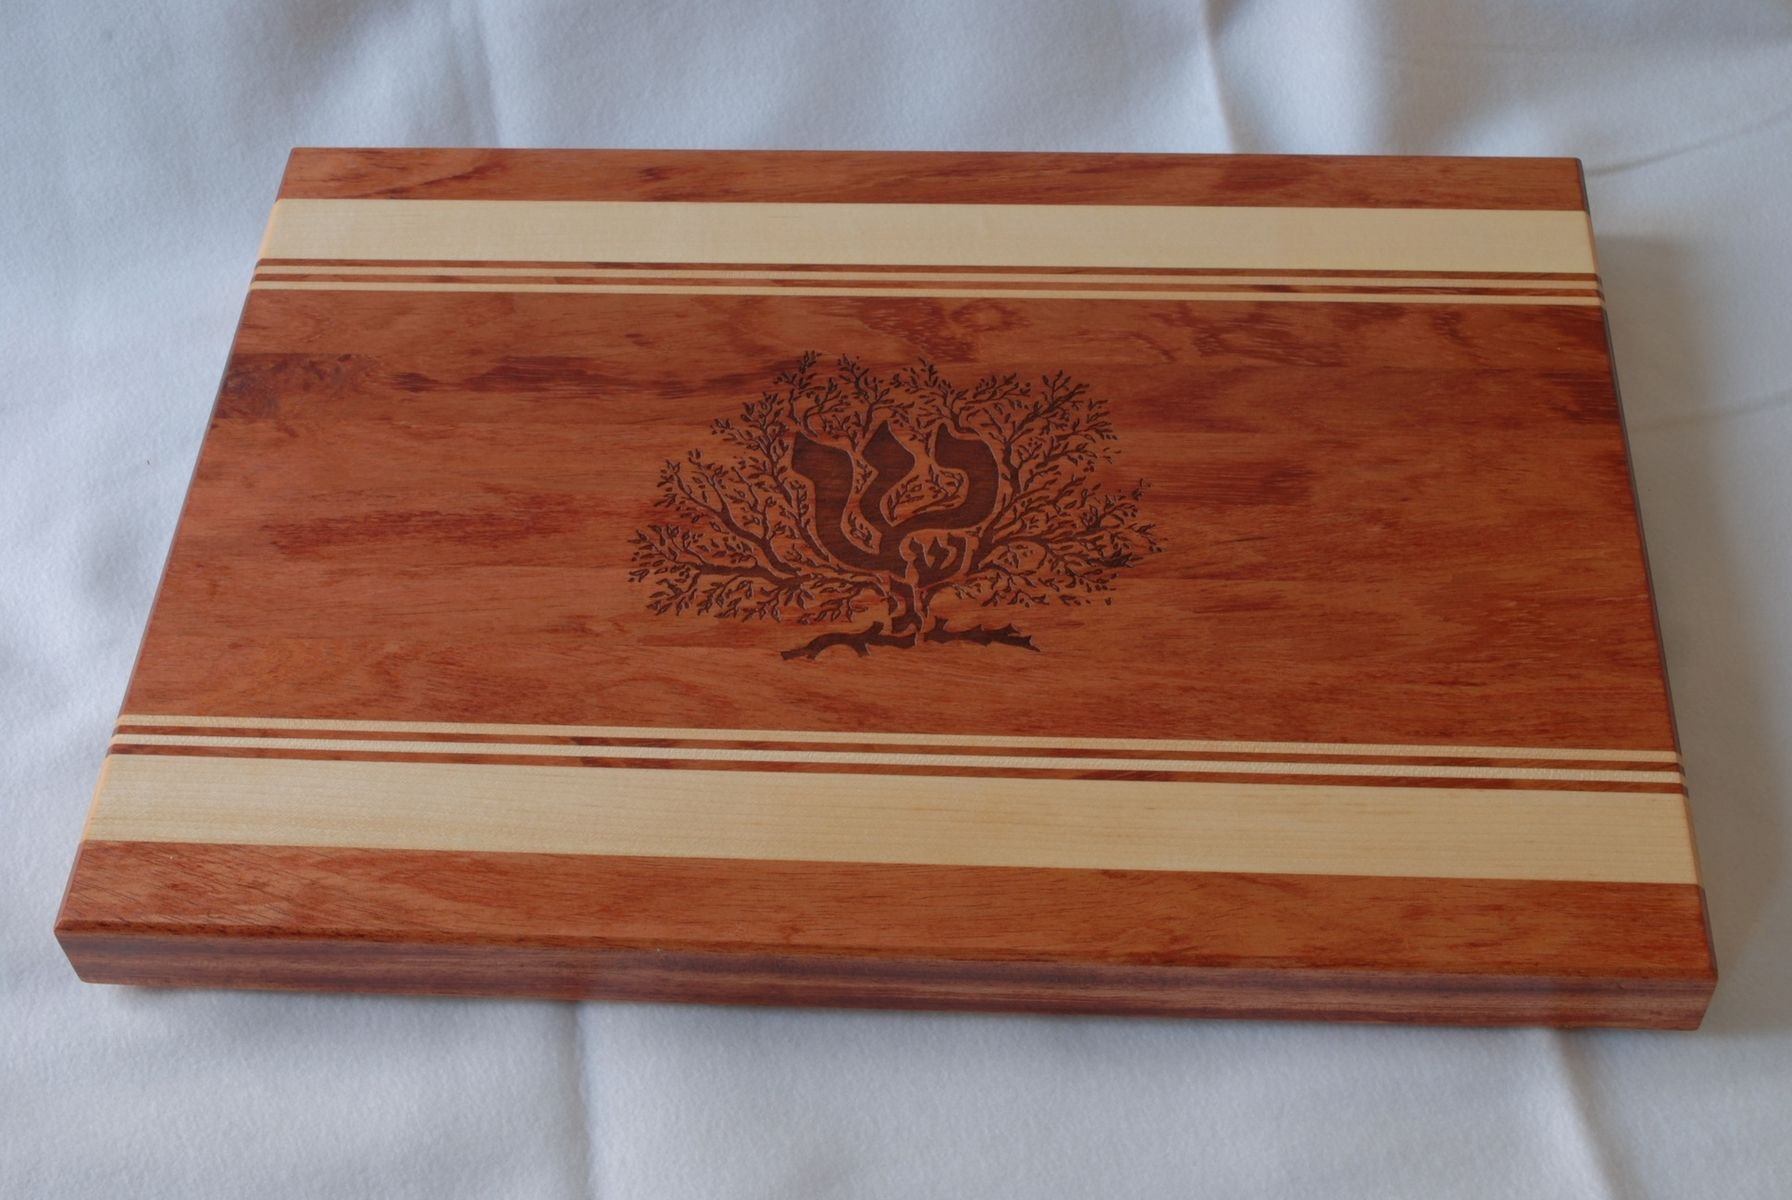 Unusual Cutting Boards Hand Crafted Engraved Wood Cutting Board Personalized